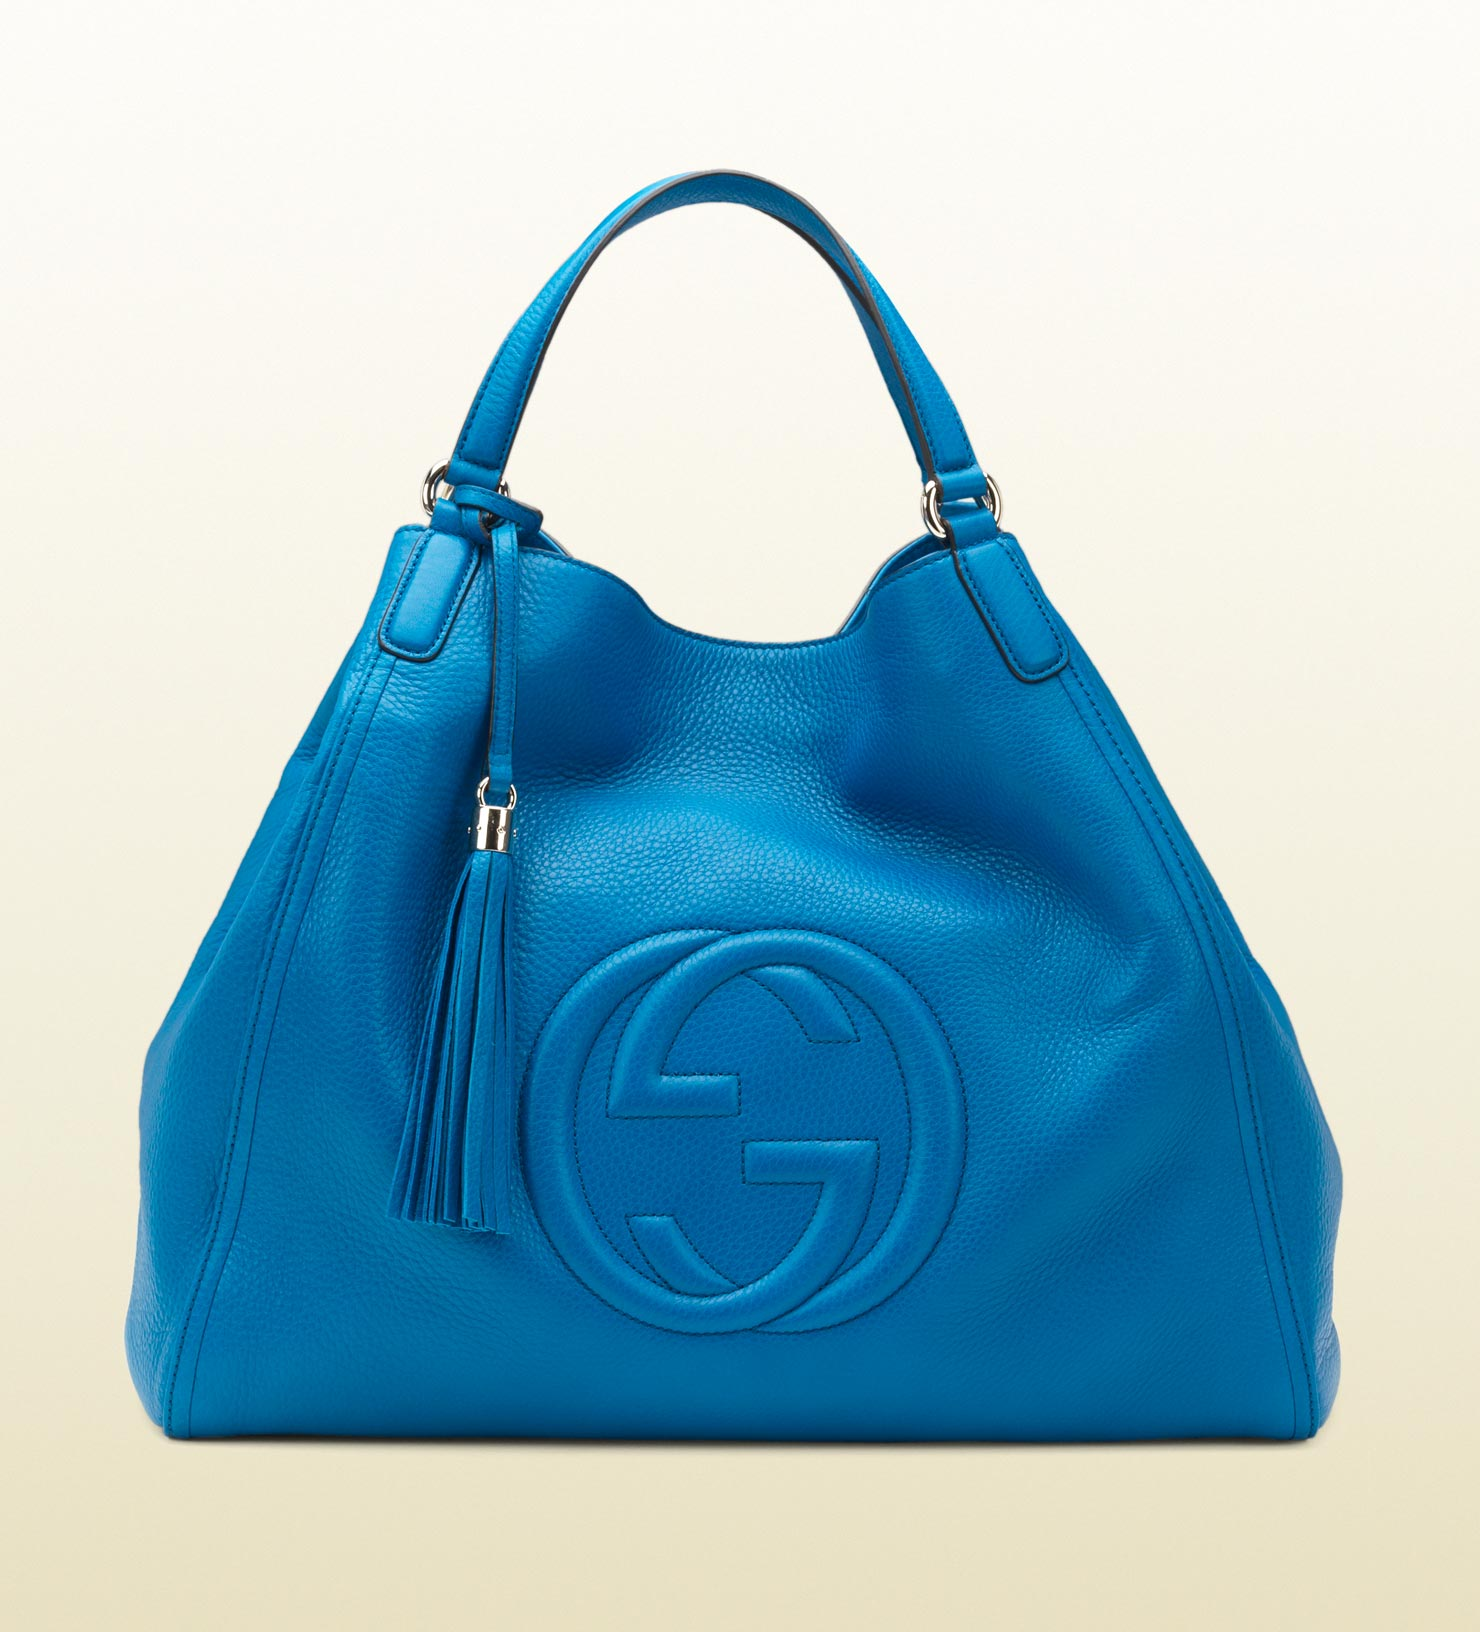 lyst gucci soho riviera blue colour leather shoulder bag in blue. Black Bedroom Furniture Sets. Home Design Ideas